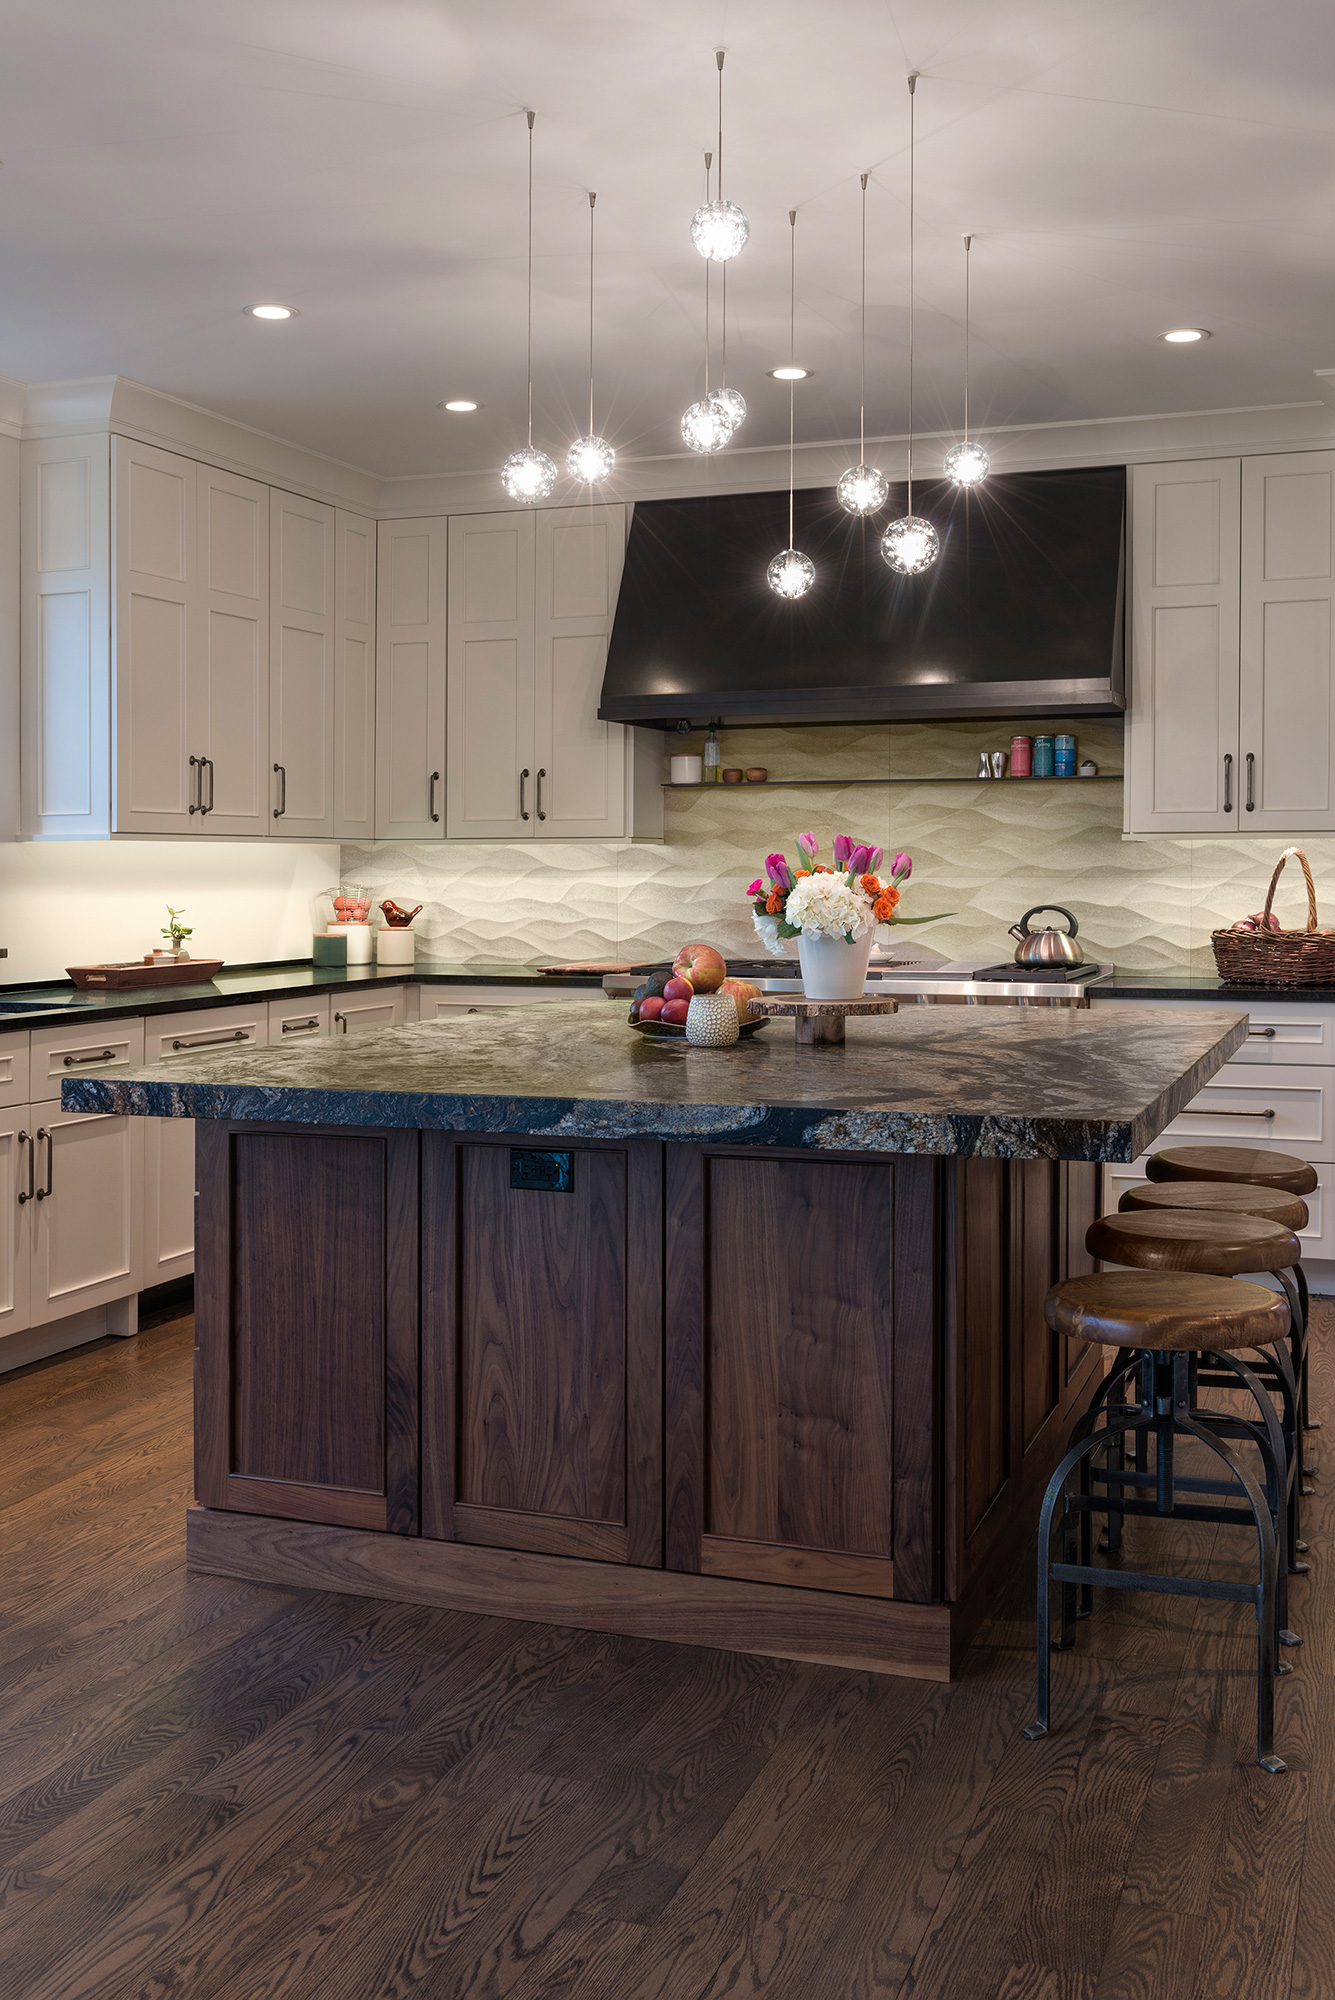 Installation Gallery Kitchen Lighting Track Rail - Where to buy kitchen lights